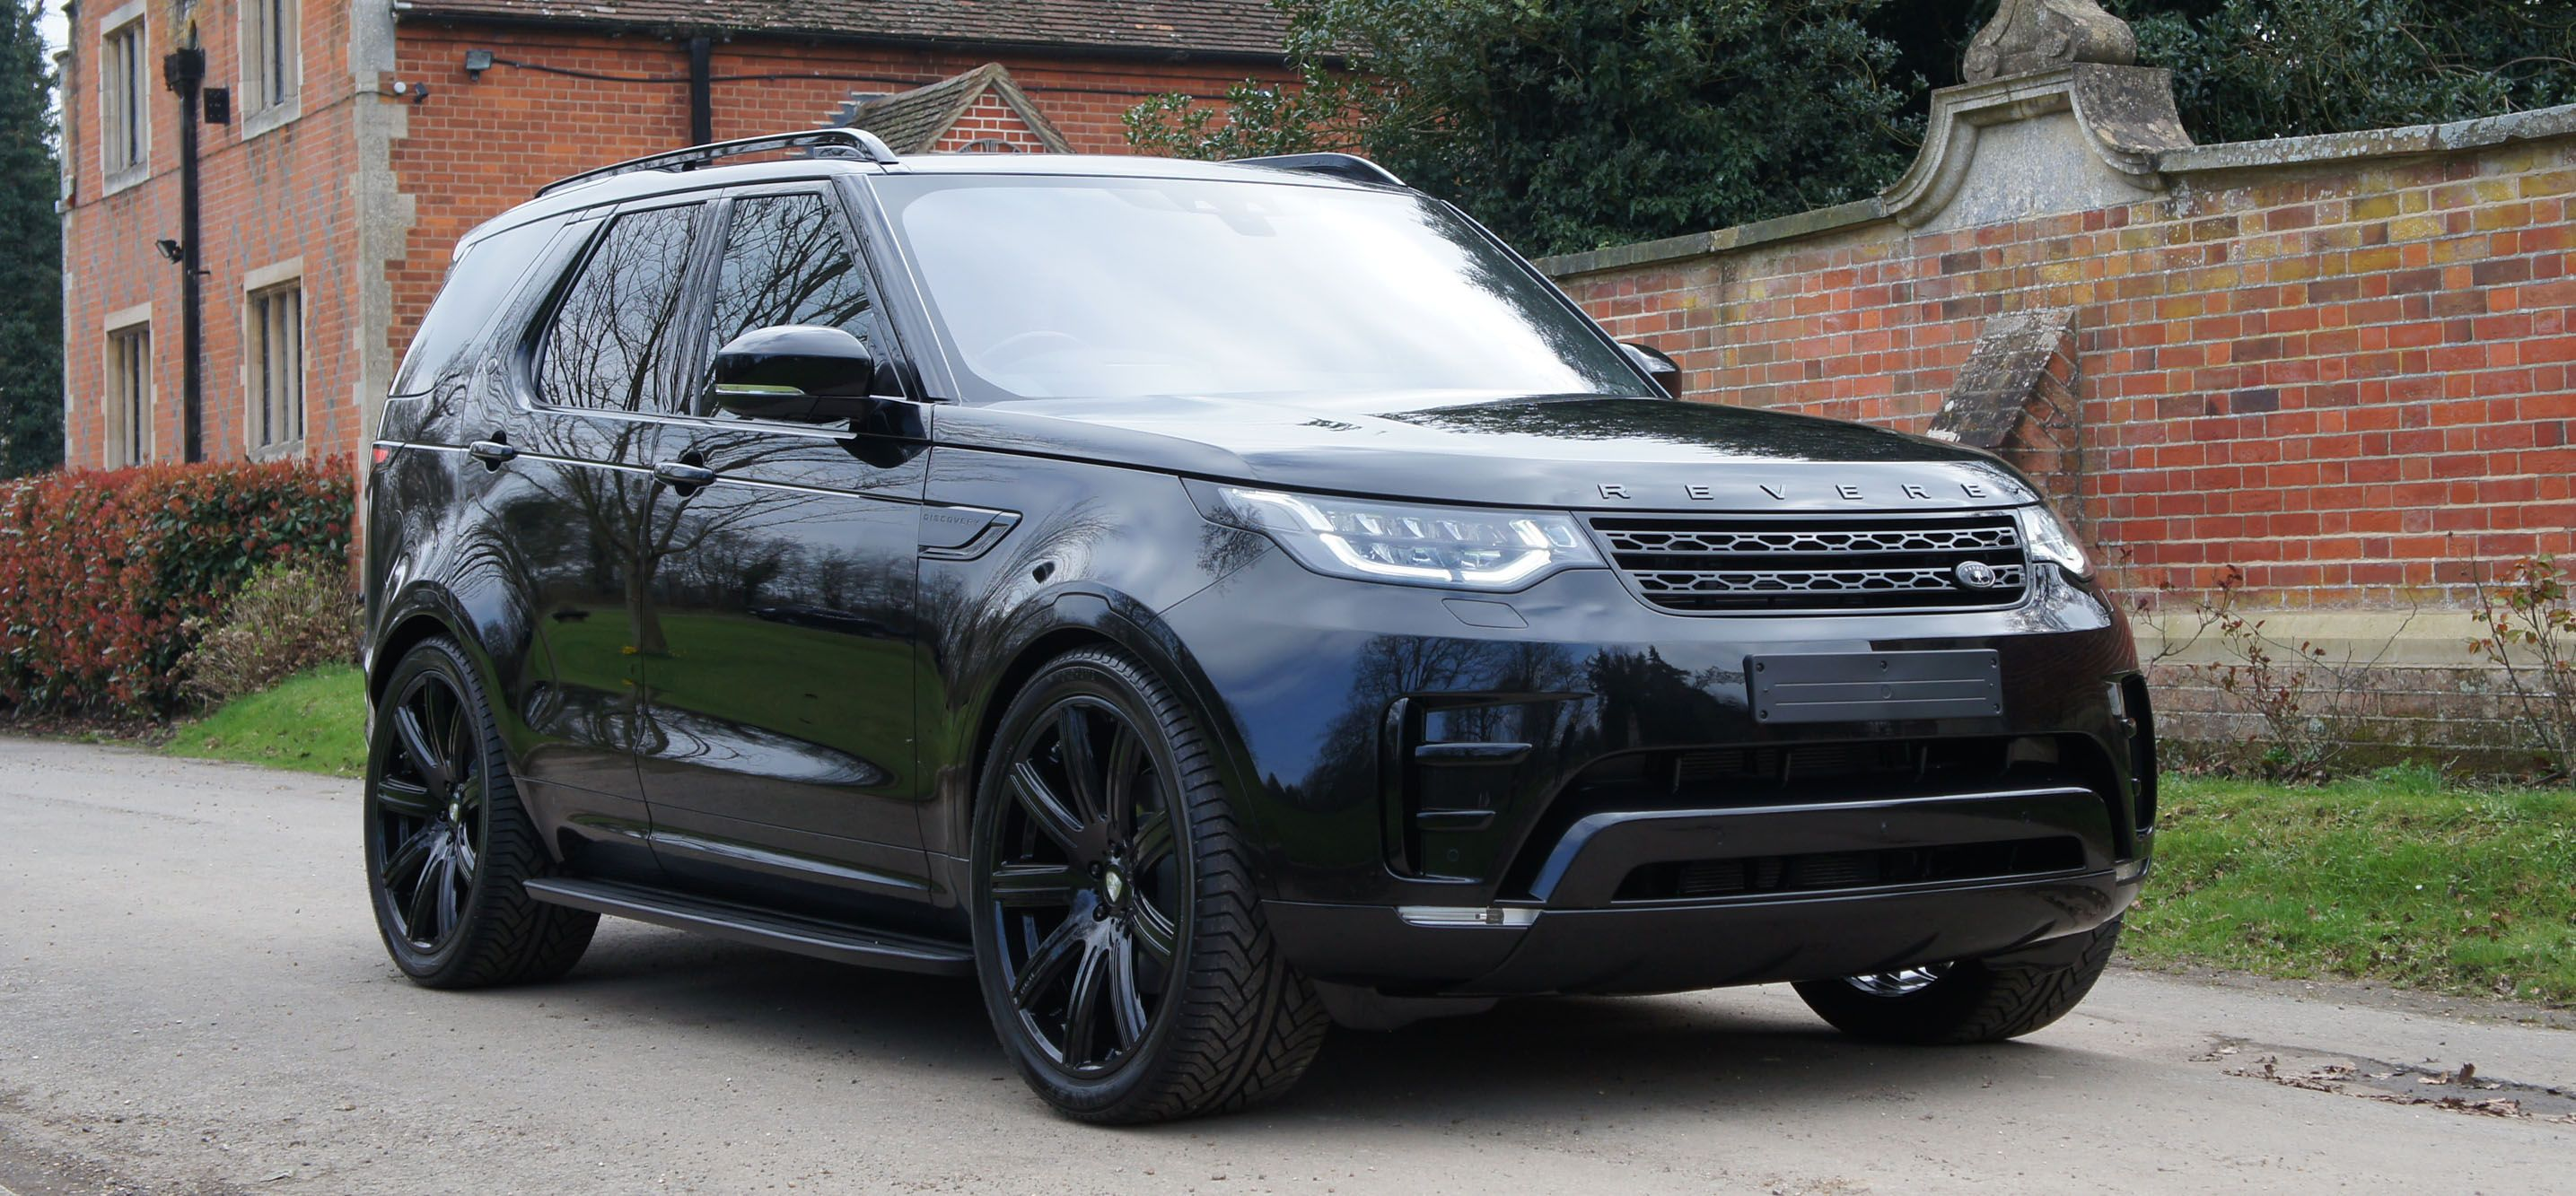 land rover discovery 5 exterior revere london car. Black Bedroom Furniture Sets. Home Design Ideas